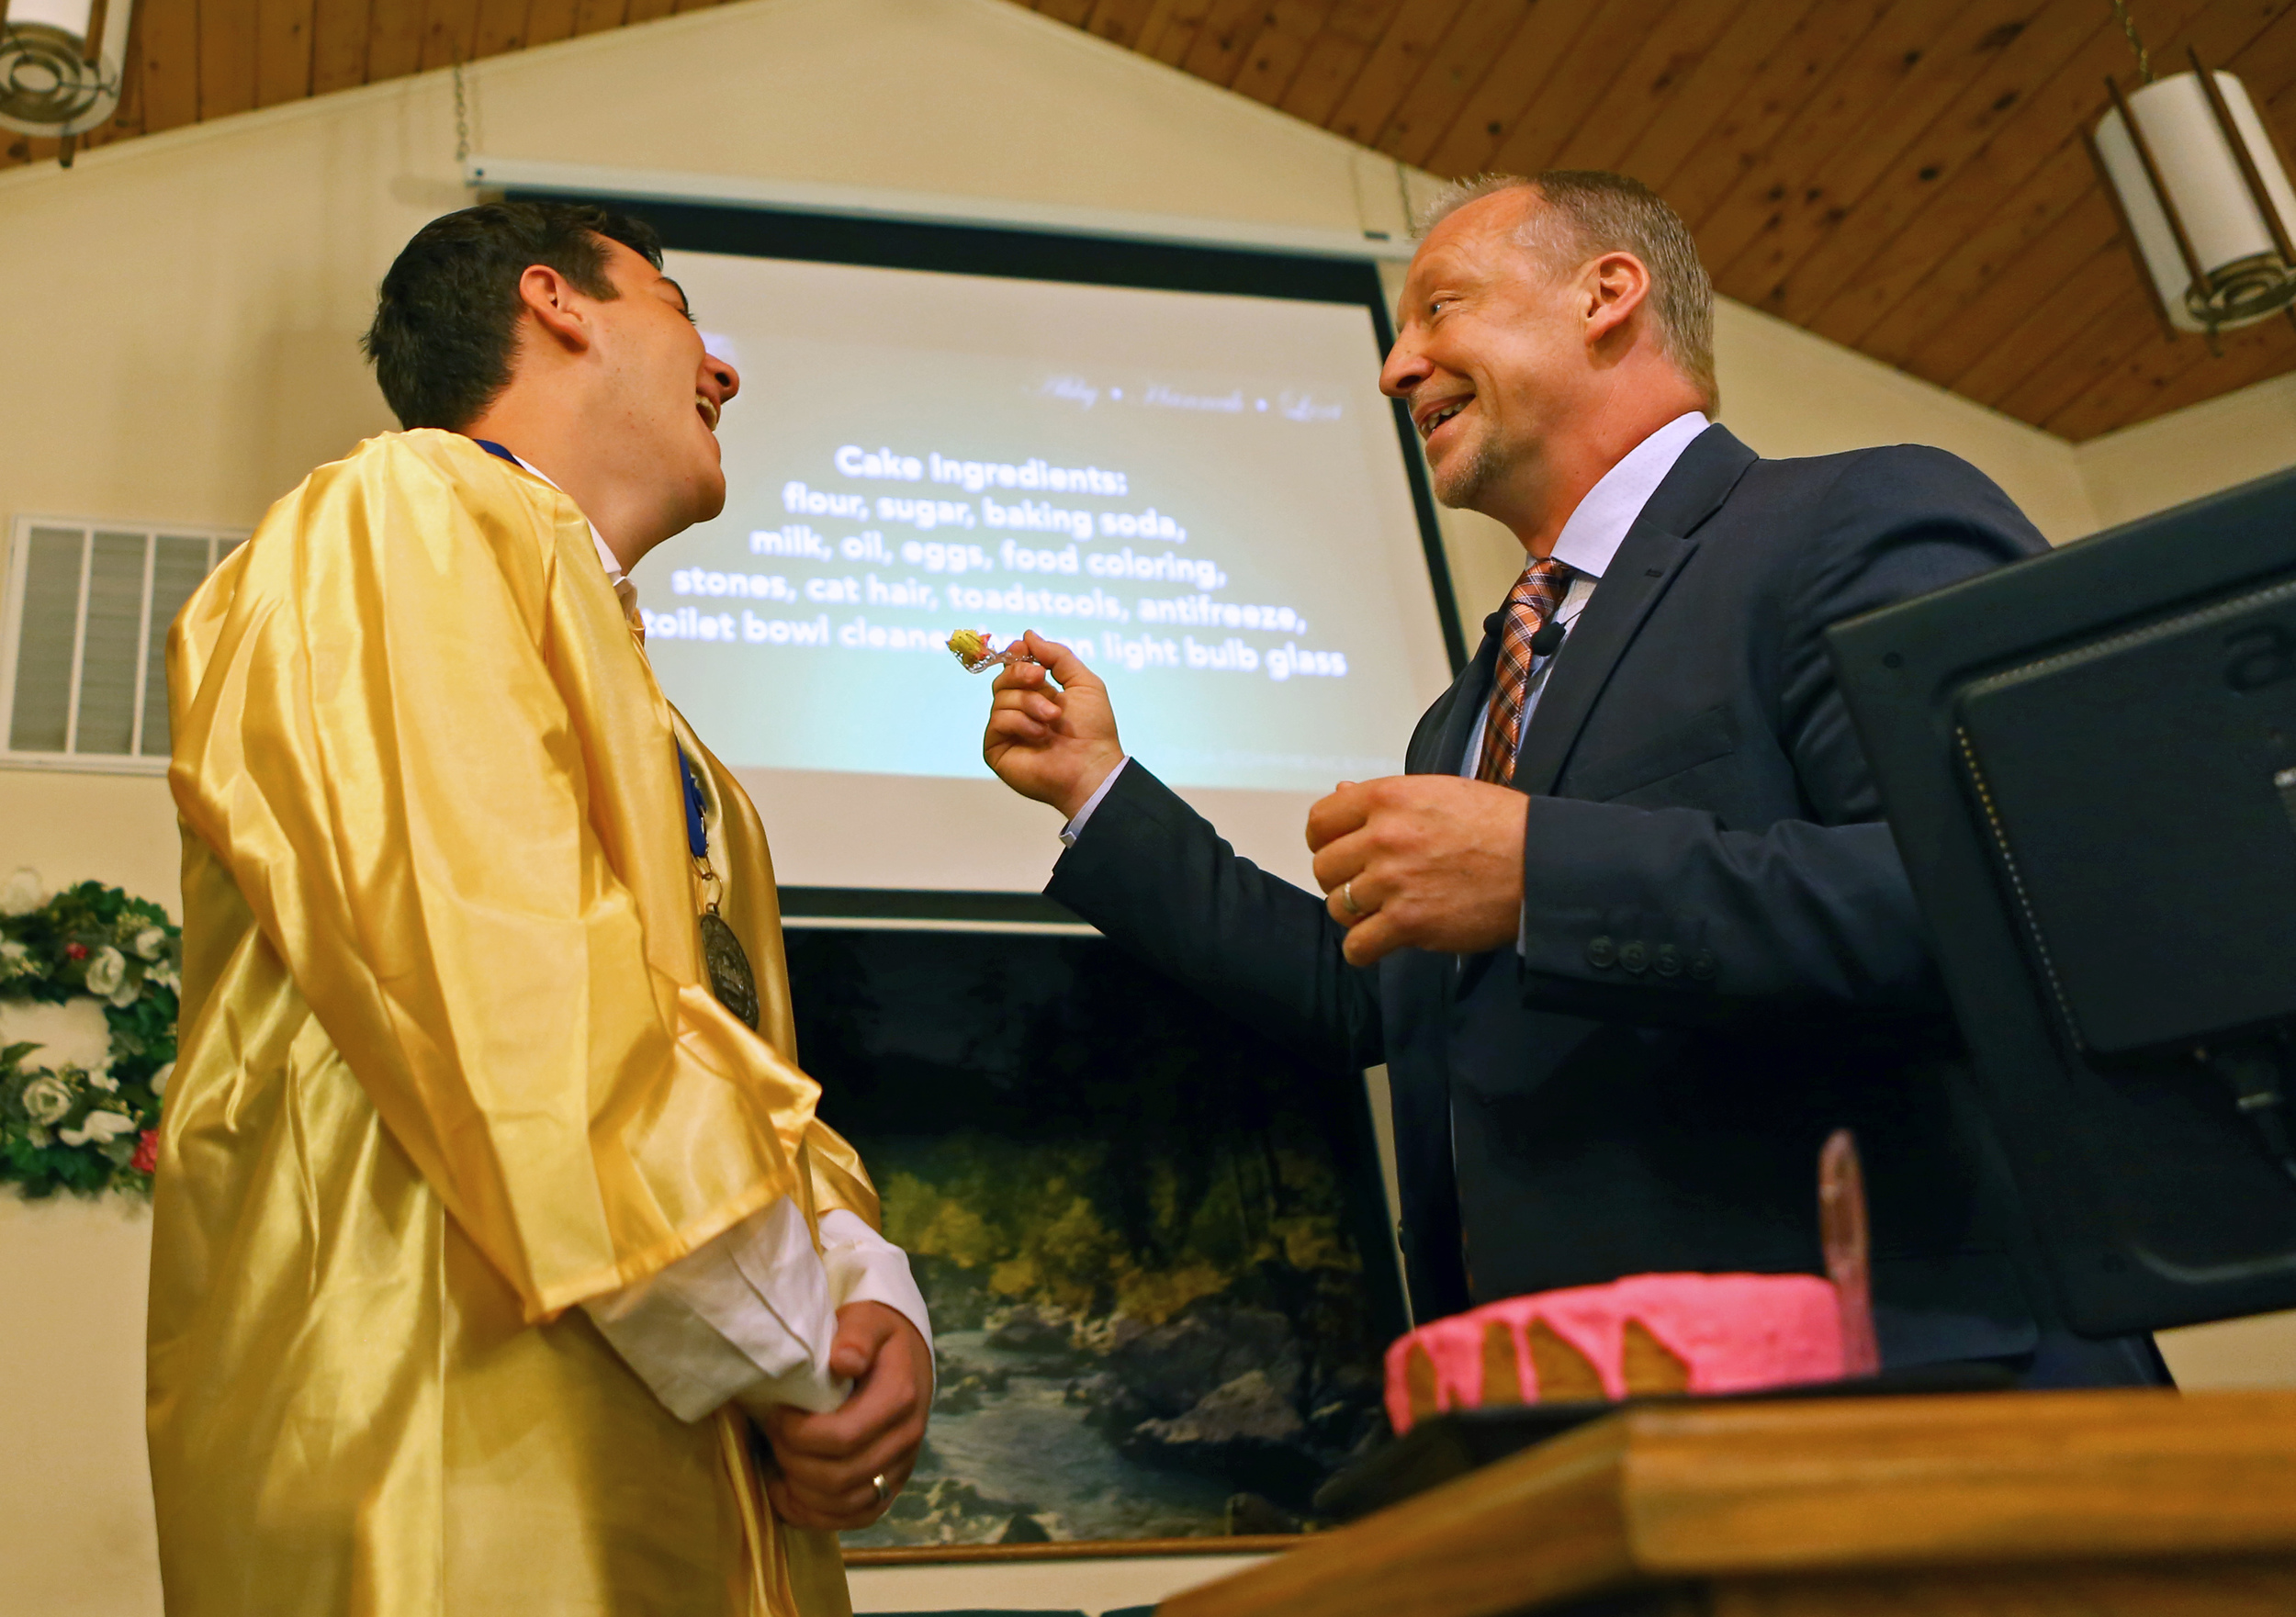 Keynote speaker Kenneth Gore, right, offers a piece of cake to Centre County Christian Academy rising senior Jacob Berzas as part of his address during the commencement ceremony at Calvary Bible Church in Centre Hall on Friday, June 10, 2016.